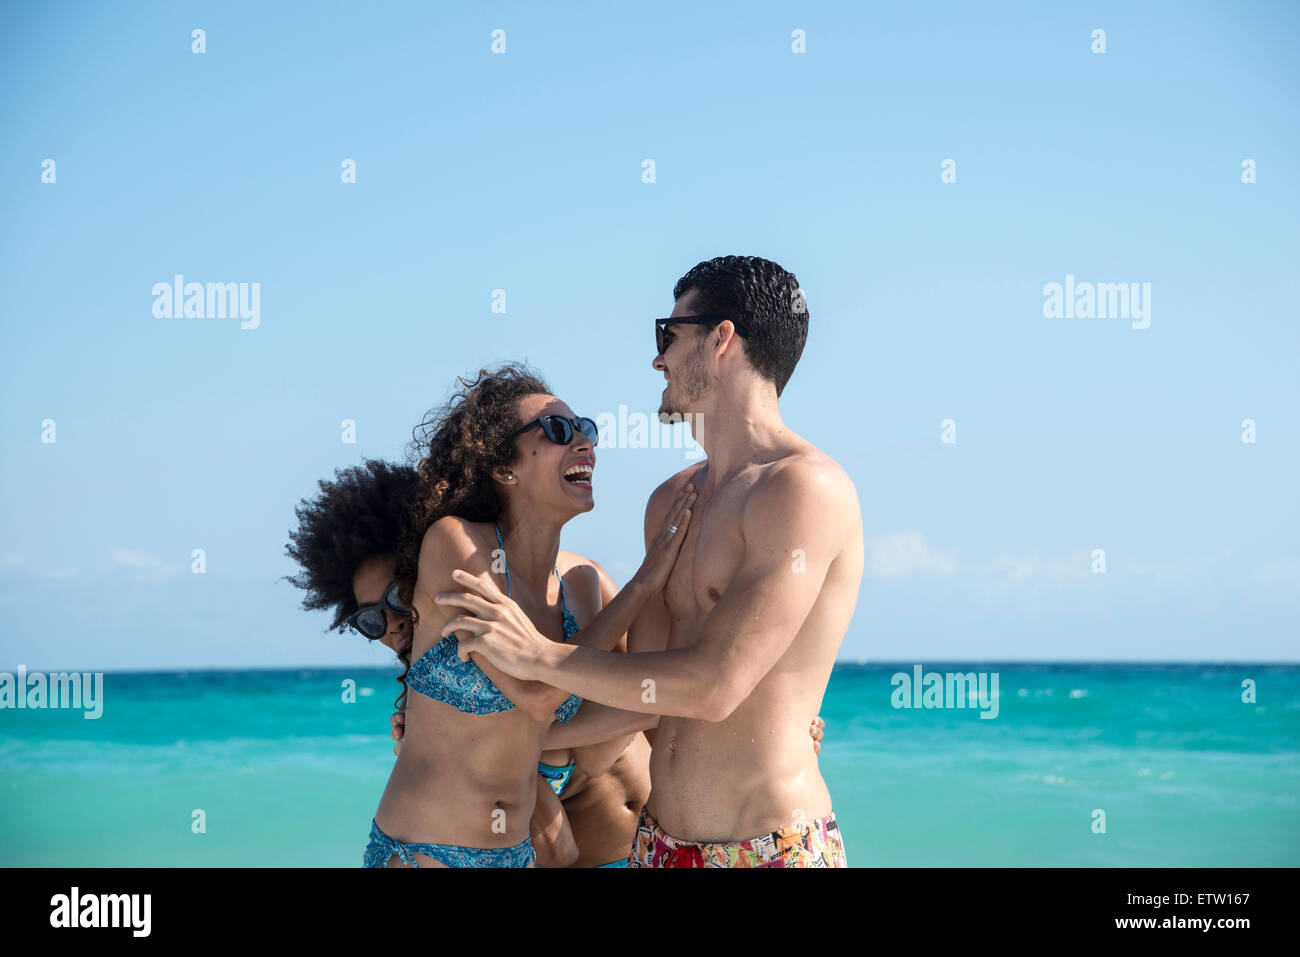 Three people playing on the beach Stock Photo